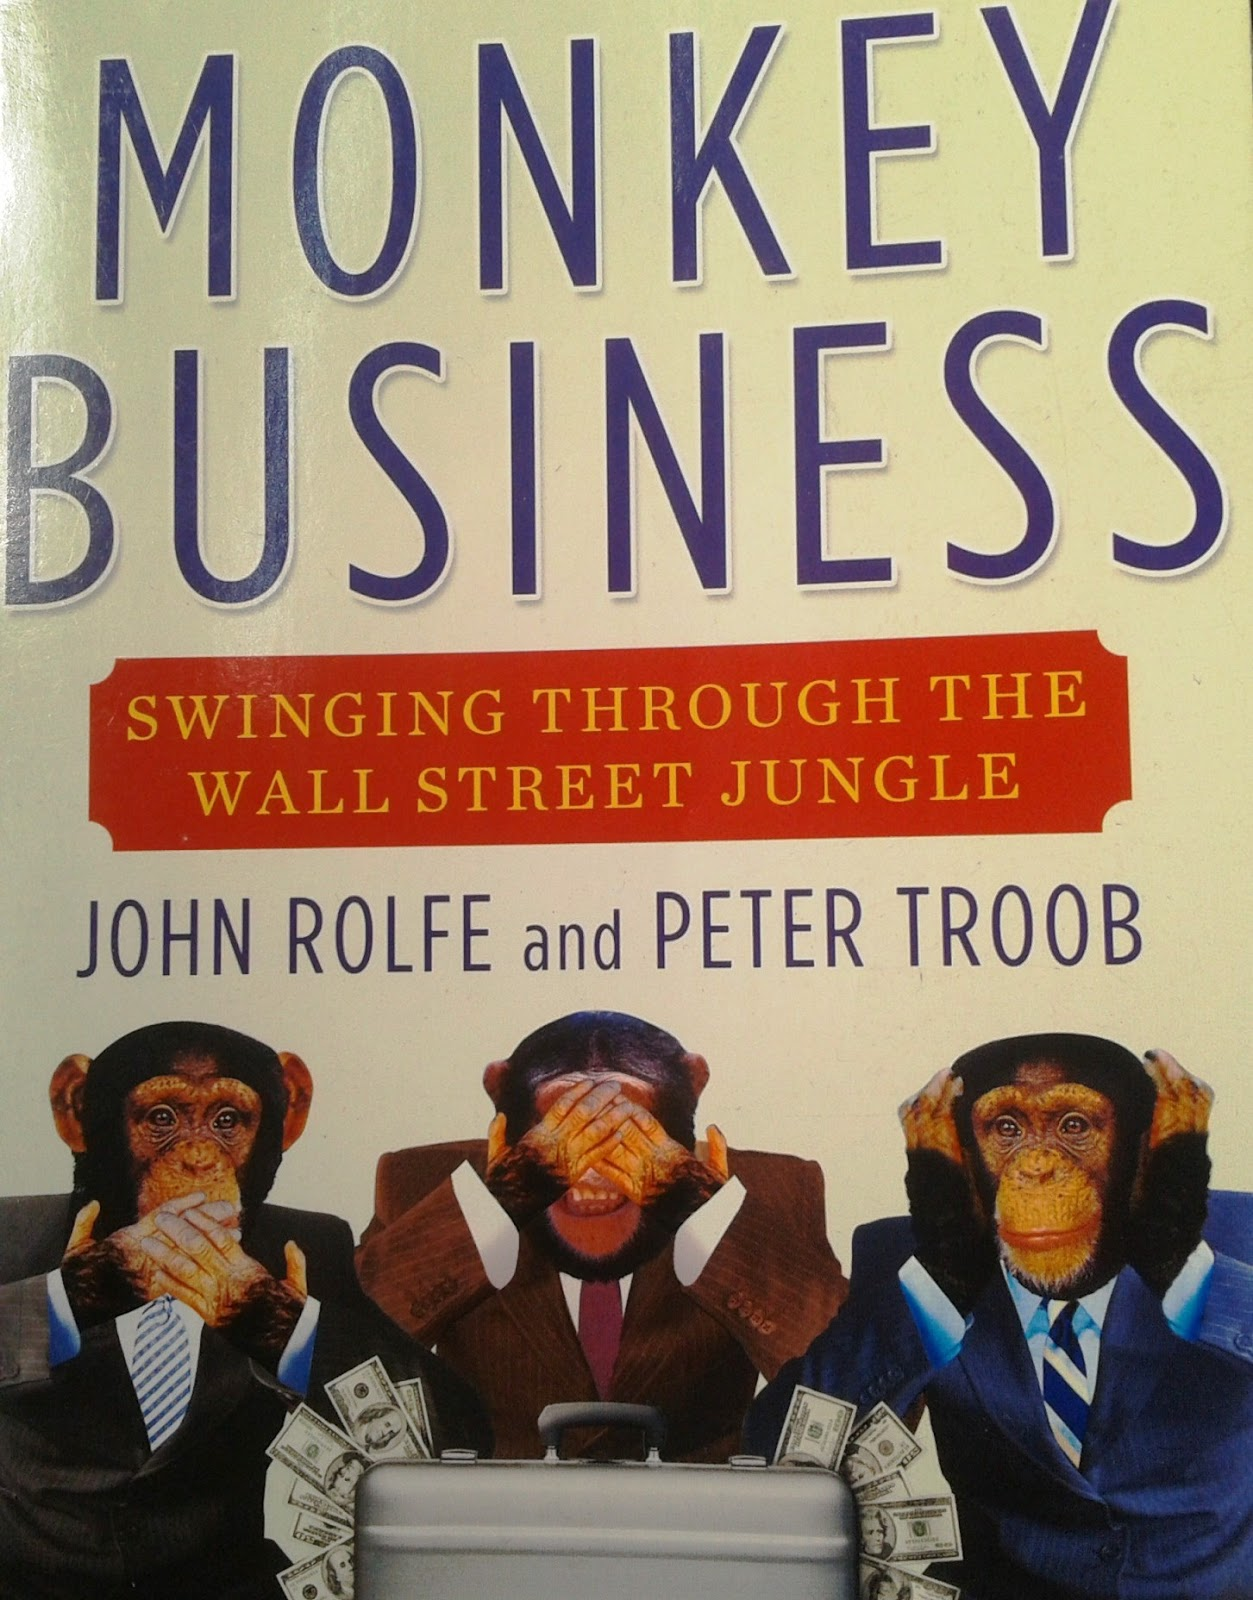 Monkey Business: Swinging Through The Wall Street Jungle by John Rolfe &amp; Peter Troob